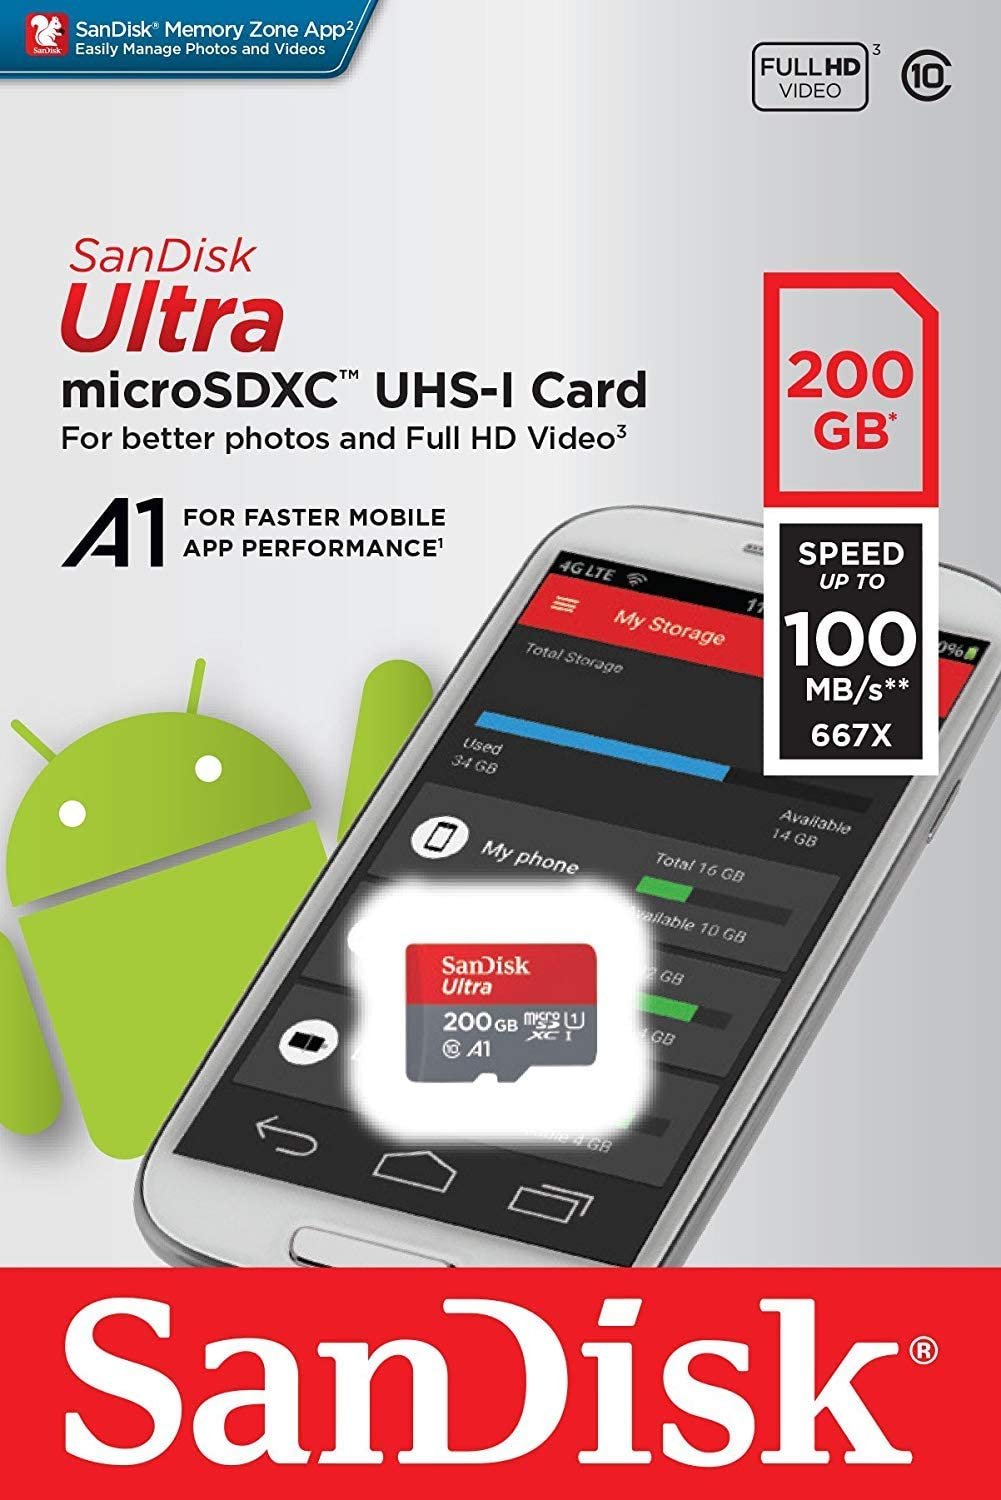 SanDisk Ultra 200GB MicroSDXC Verified for ZTE Optik 2 by SanFlash 100MBs A1 U1 C10 Works with SanDisk